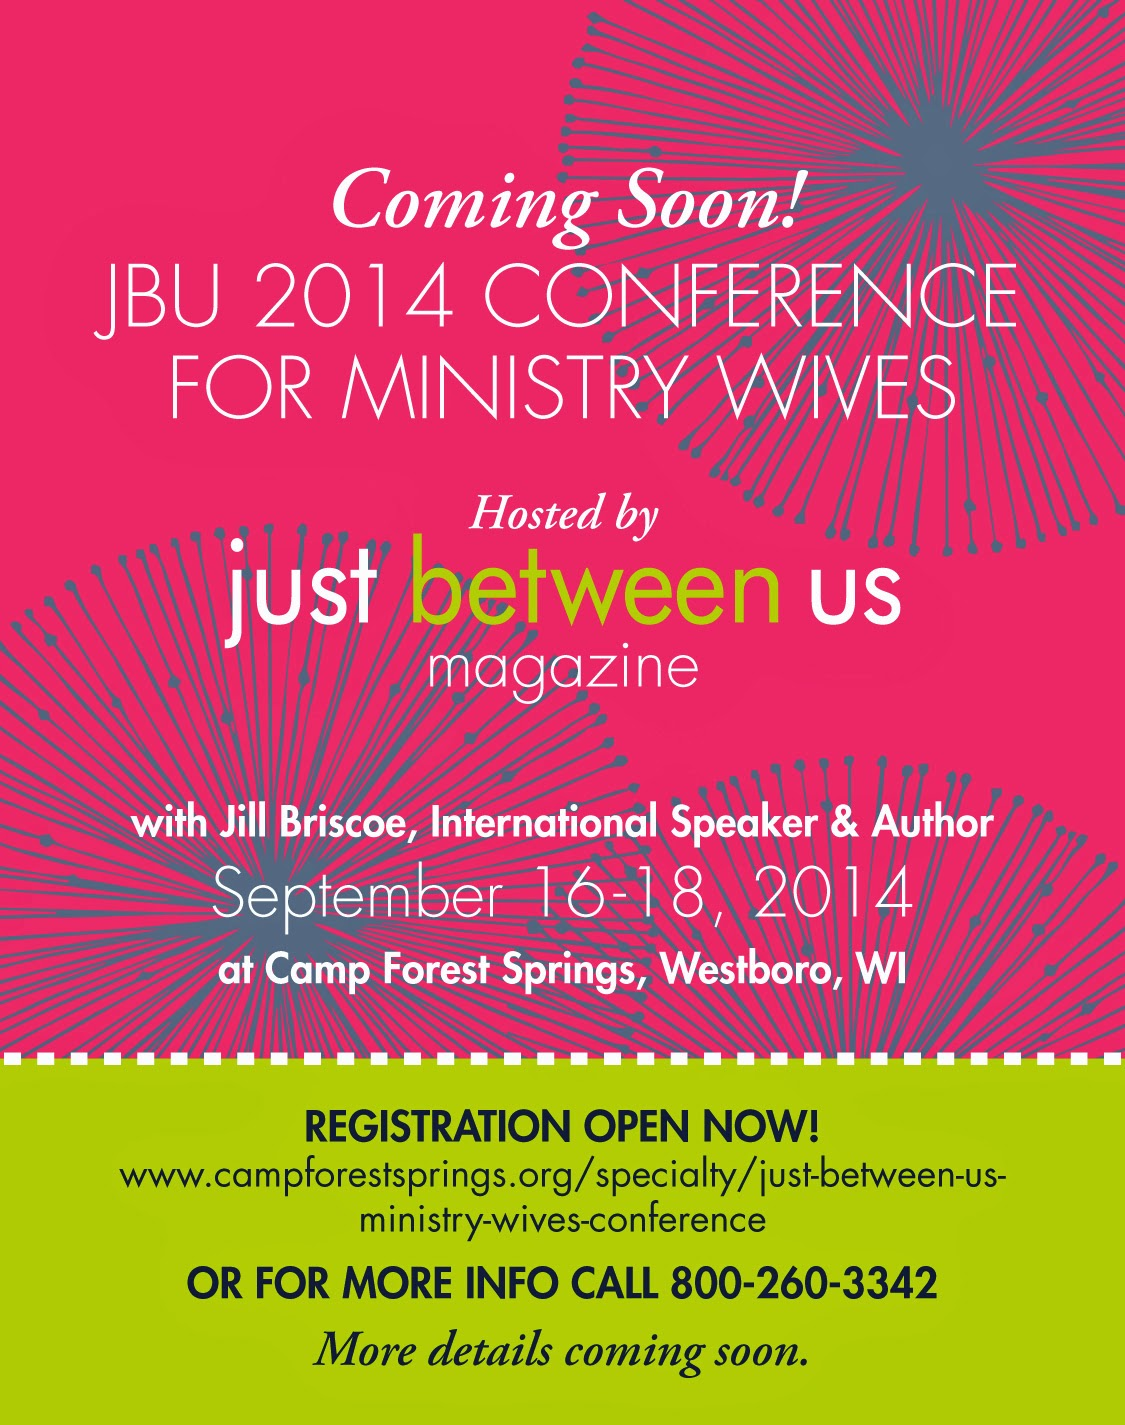 2014 JBU Ministry Wives Conference